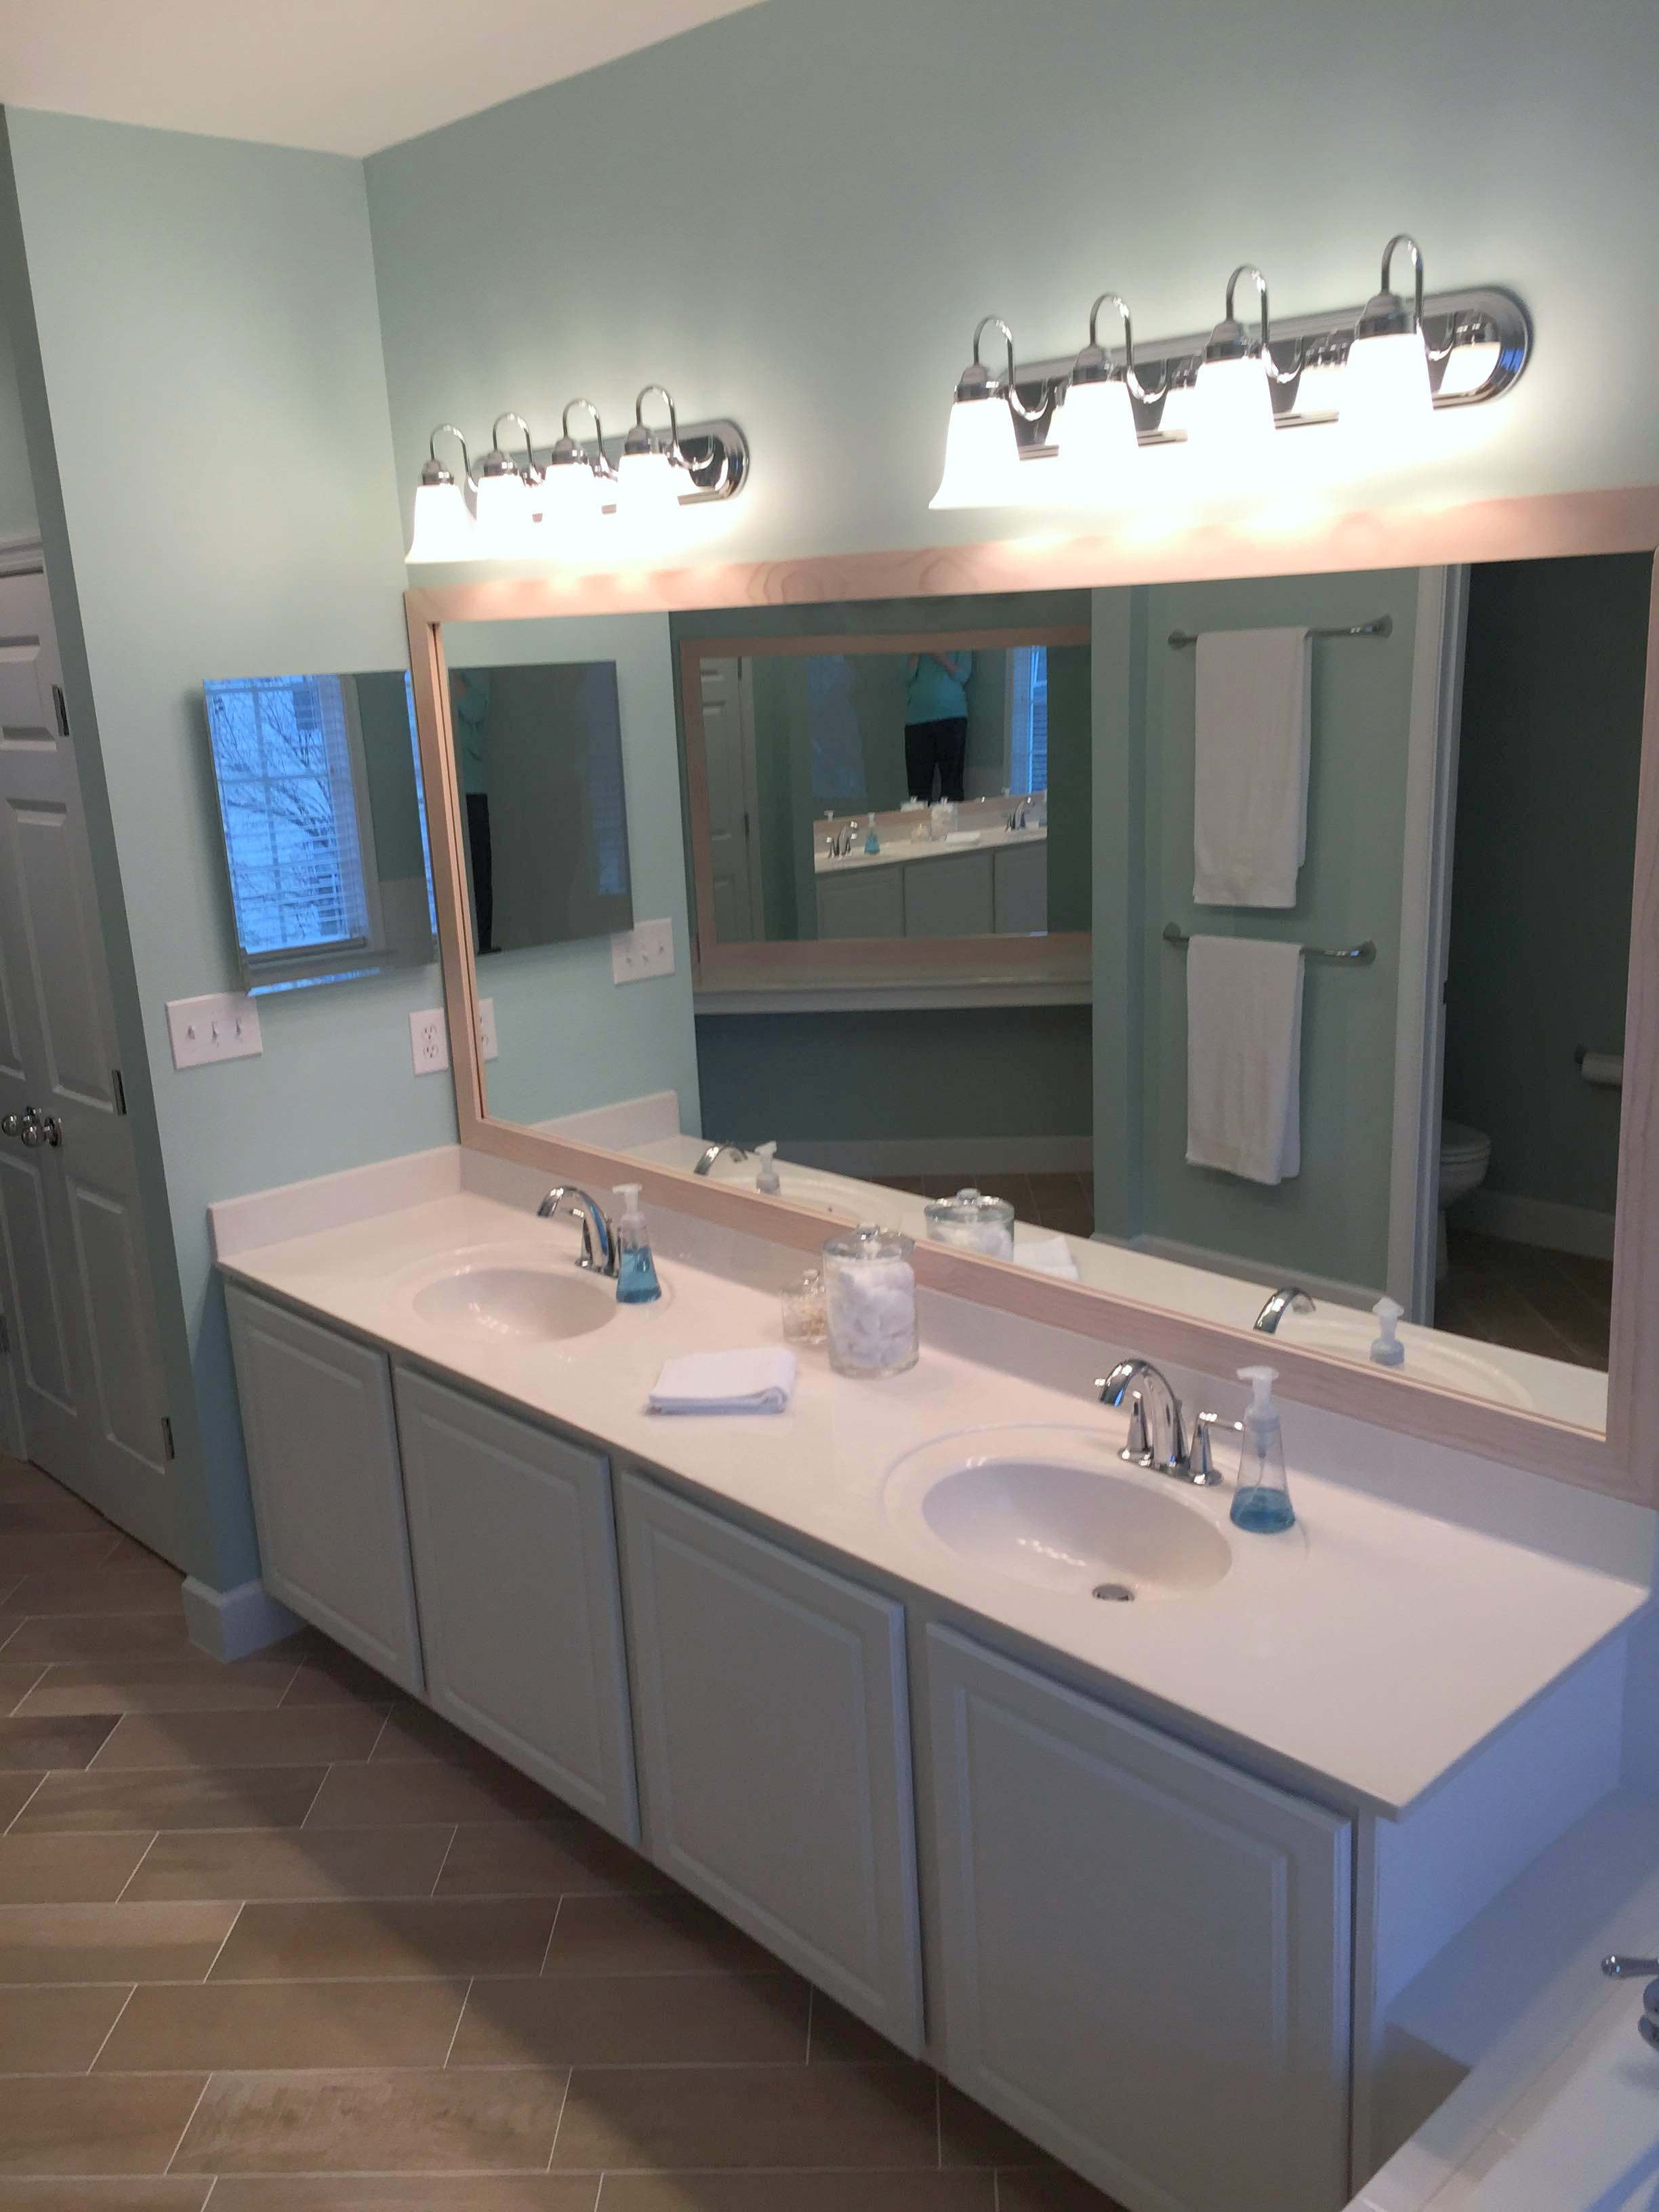 Fantastic Cleaning Bathroom With Bleach And Water Thick Briggs Bathtub Installation Instructions Solid Decorative Bathroom Tile Board Bath Remodel Tile Shower Youthful Small Country Bathroom Vanities YellowBathroom Tile Suppliers Newcastle Upon Tyne Calming Bathroom Paint Colors   Rukinet